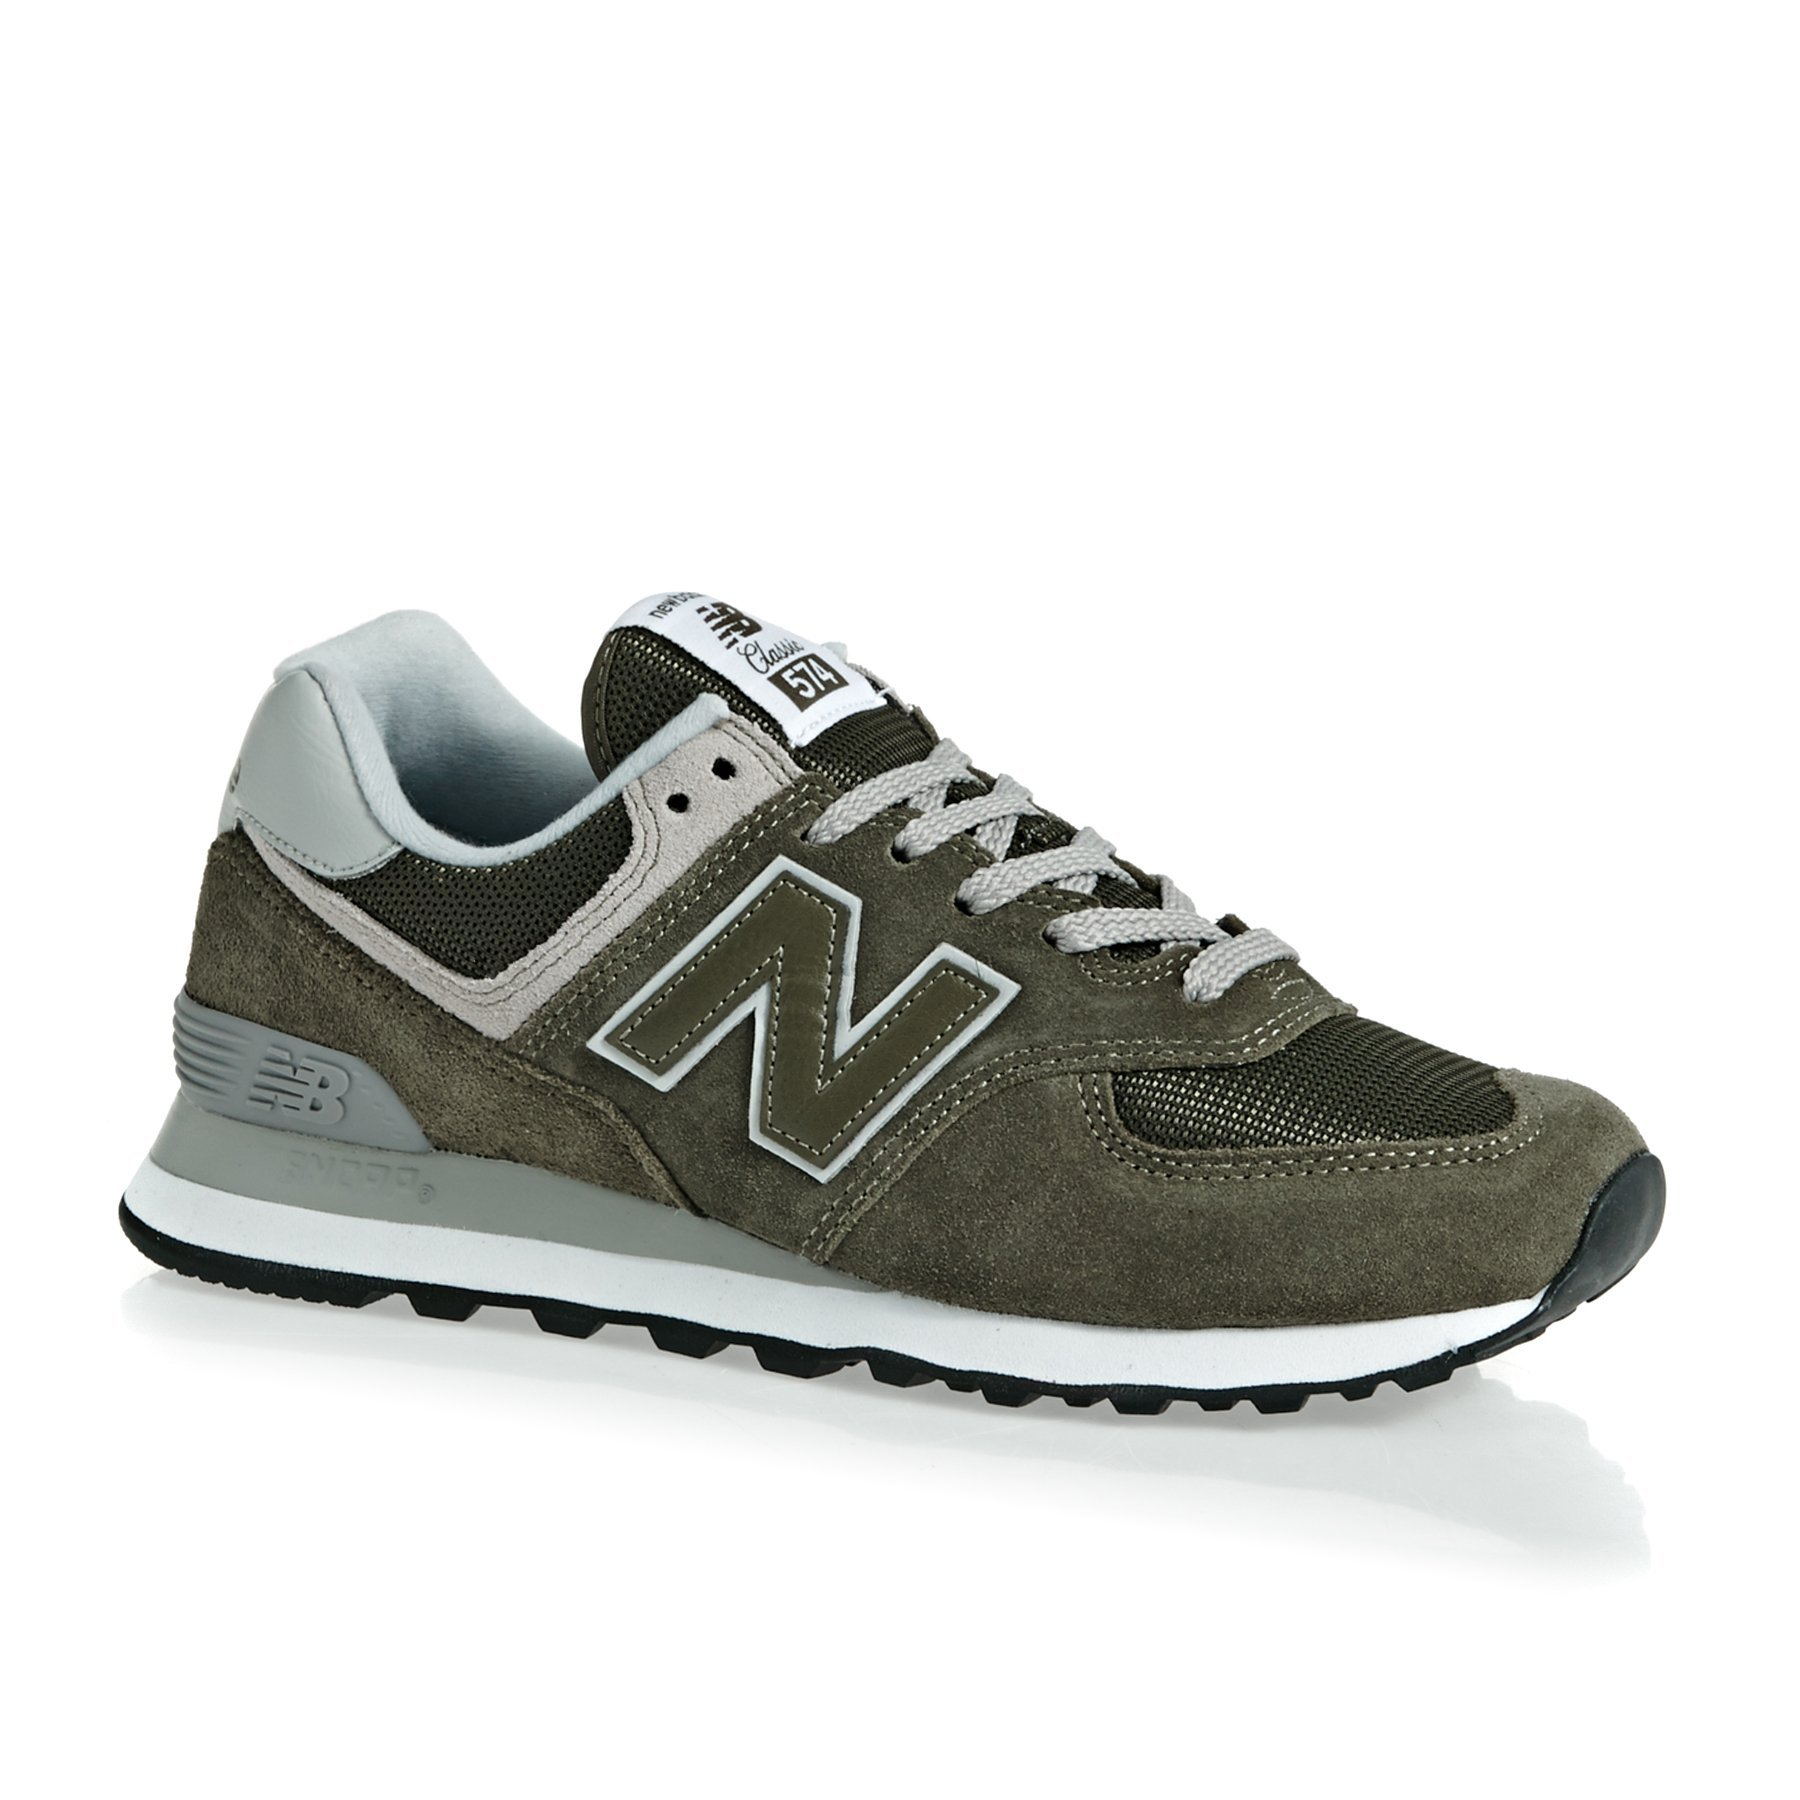 designer fashion 3642c 22ea0 New Balance Men's ML574EGO, Olive, 6.5 D US